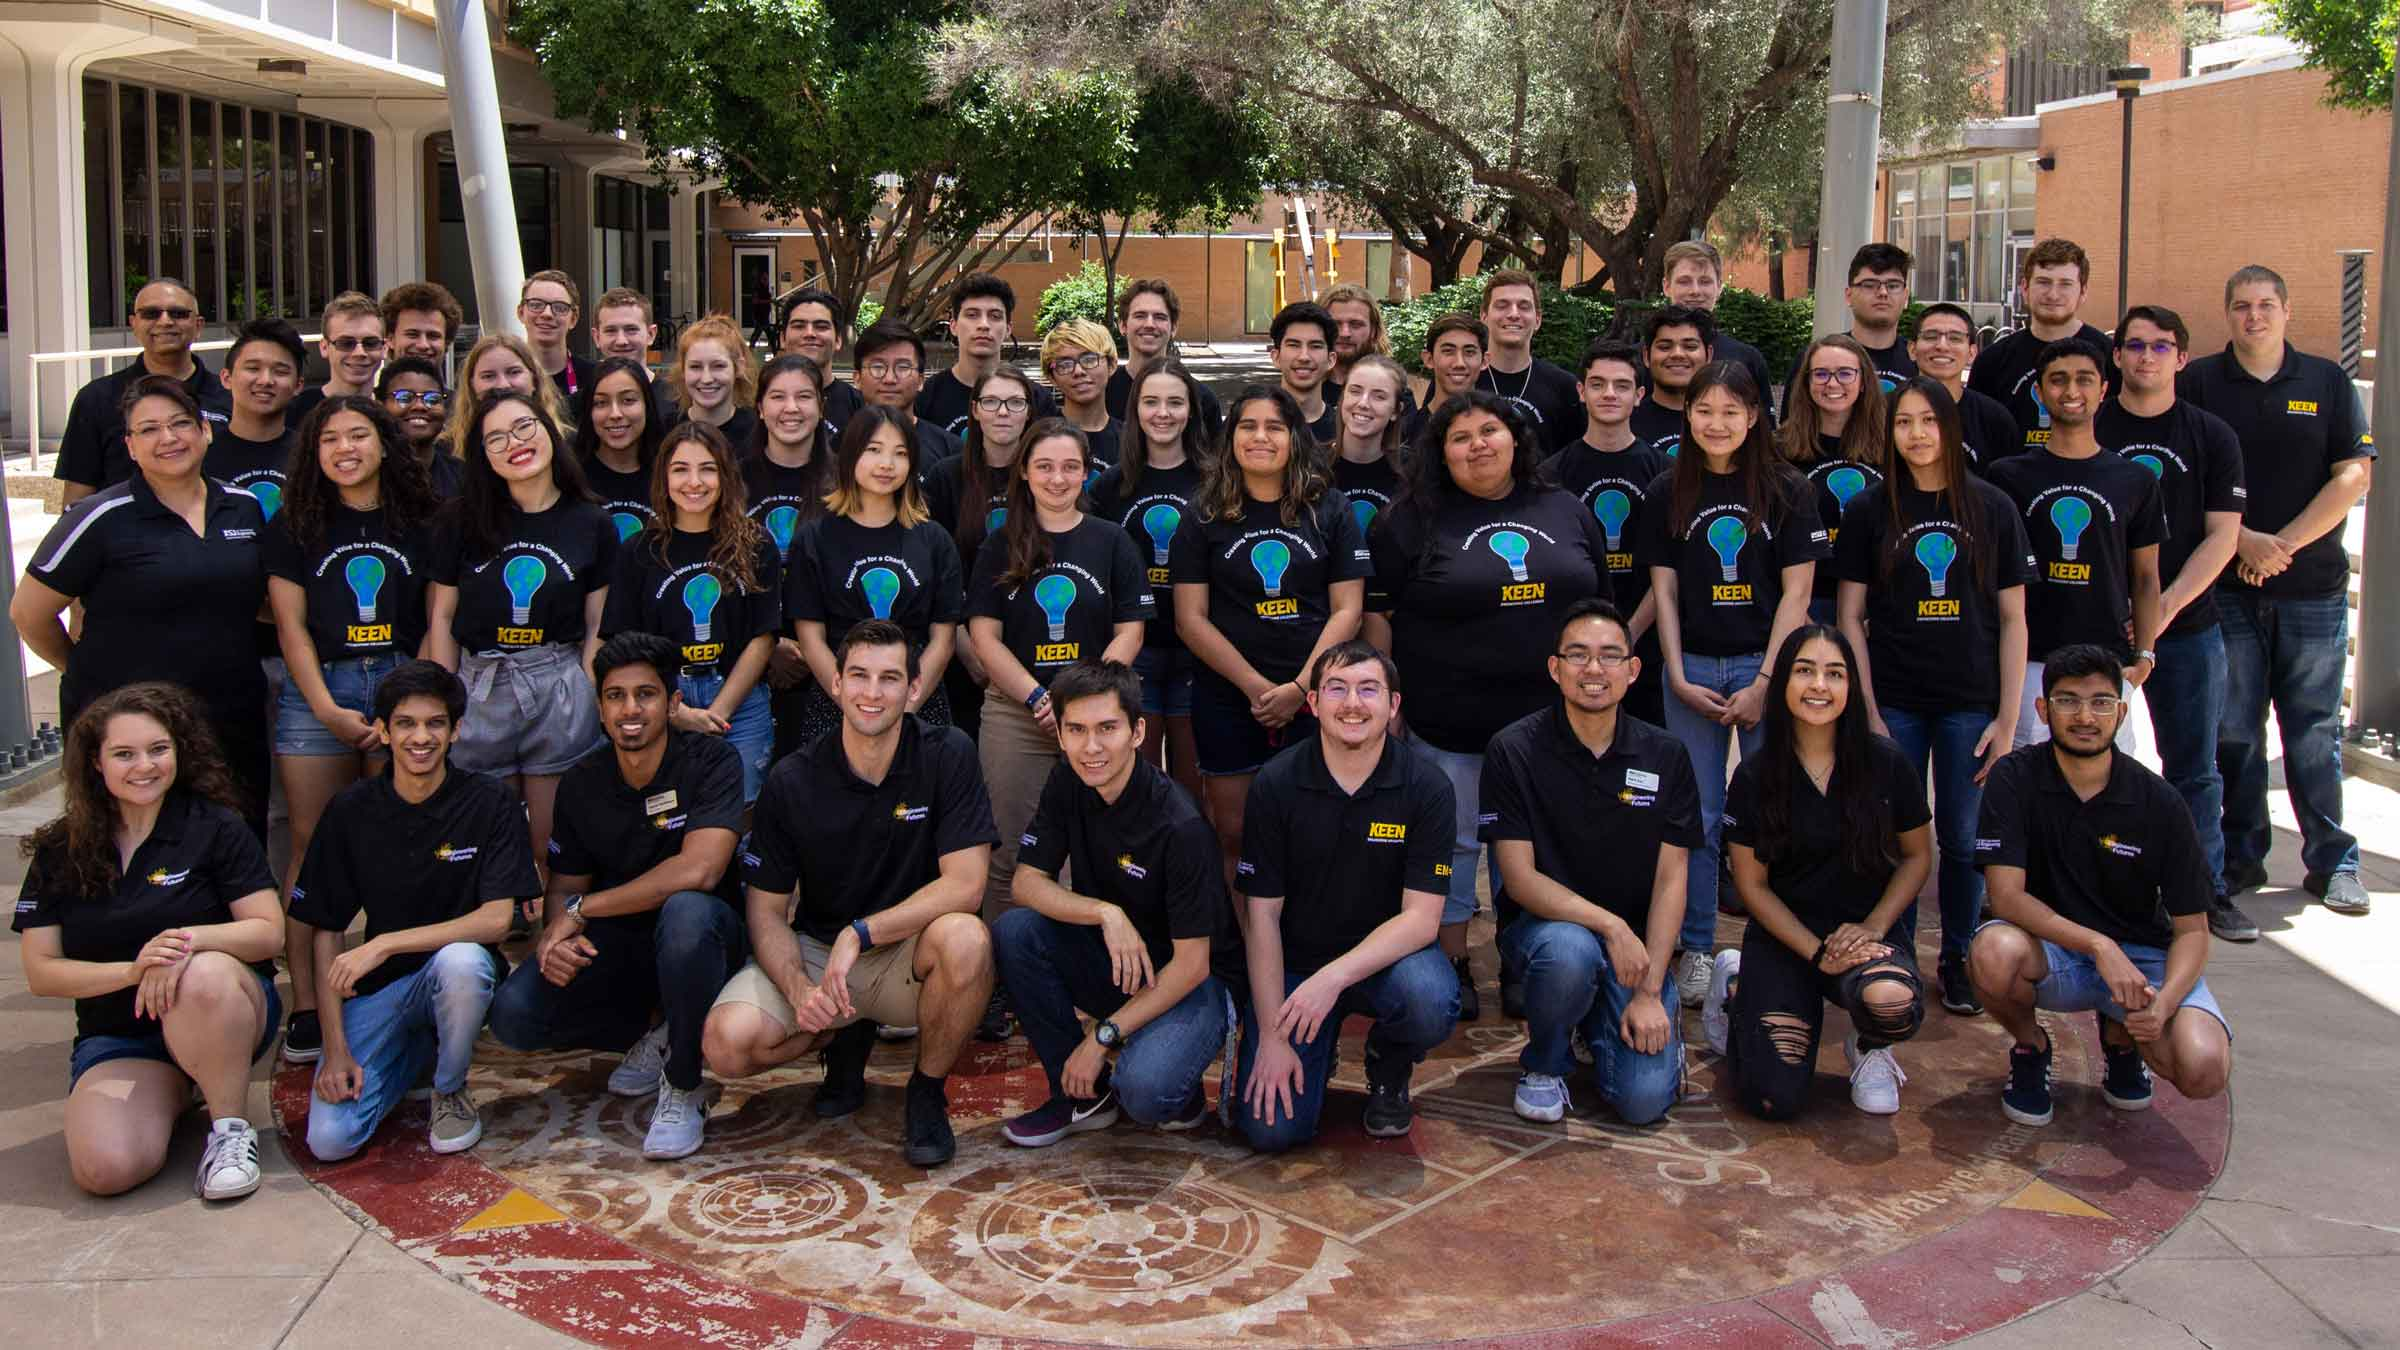 A group of about 60 sophomores pose outdoors on ASU's campus for a photo, all wearing their camp t-shirts